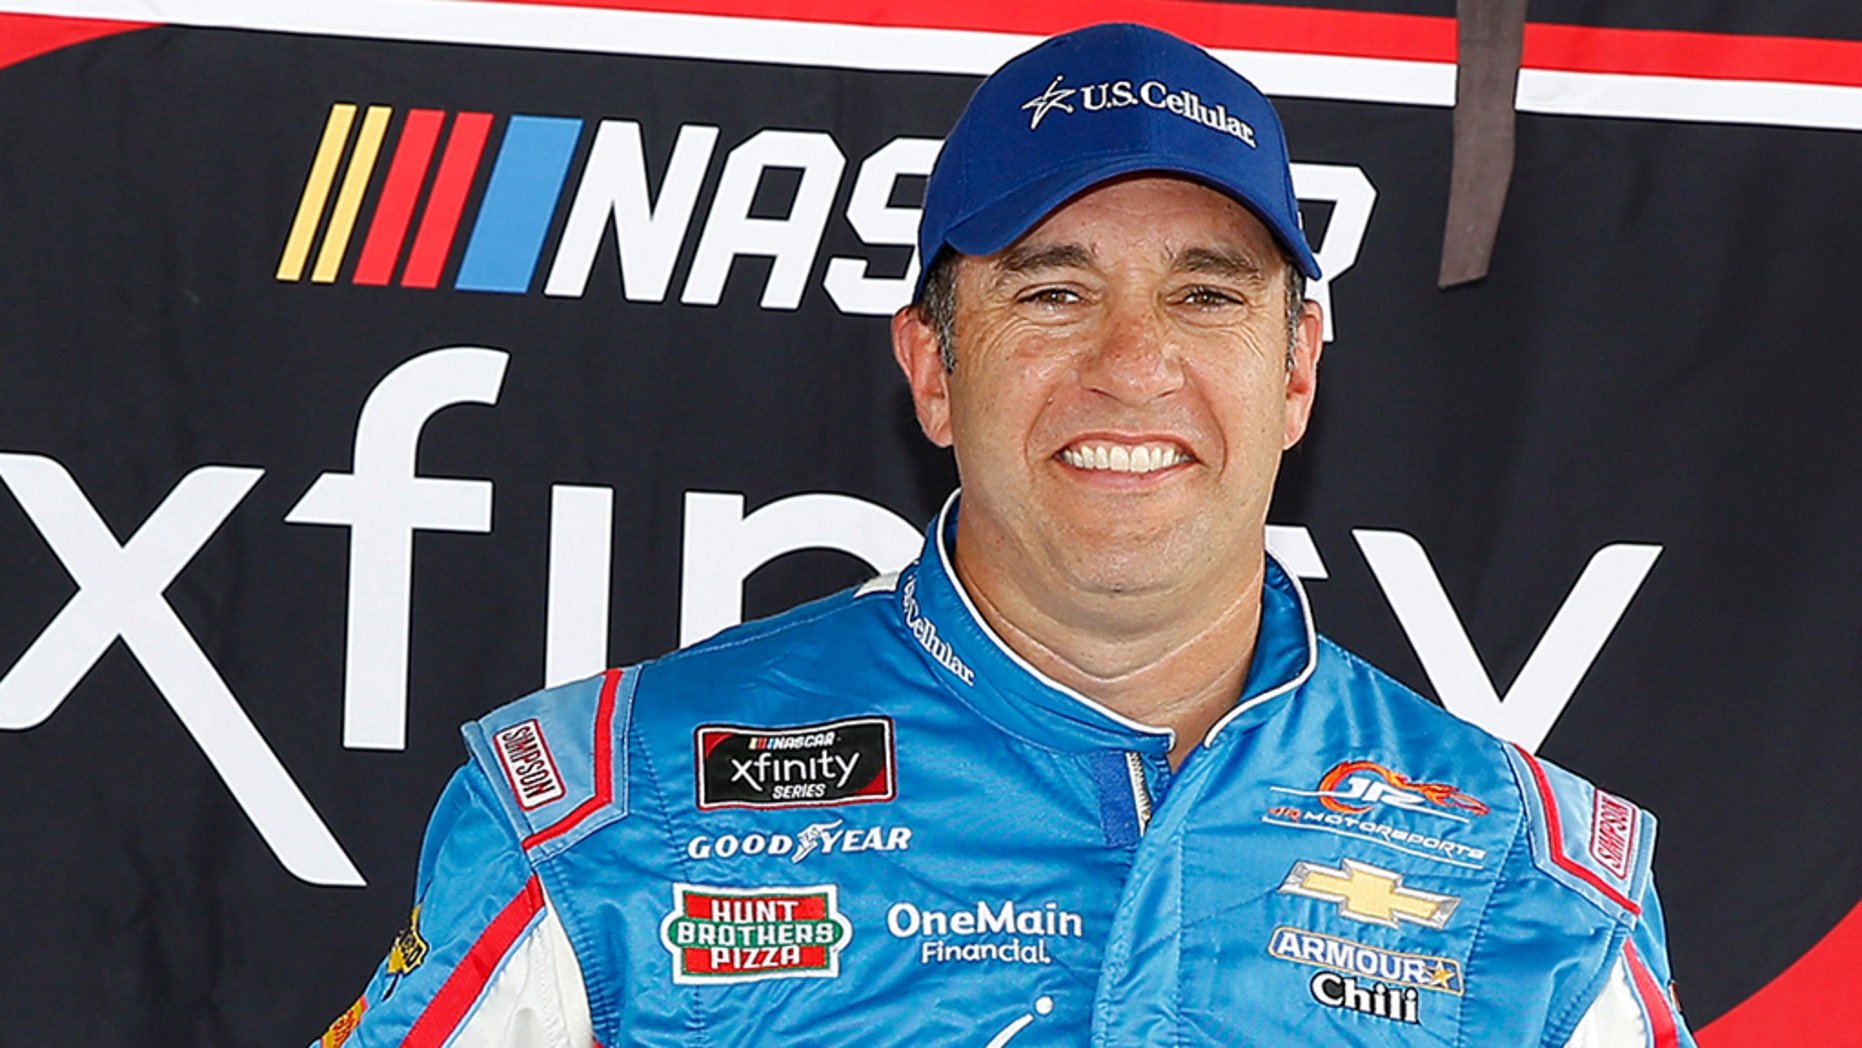 Elliott Sadler is leaving the sport to spend more time with his family.